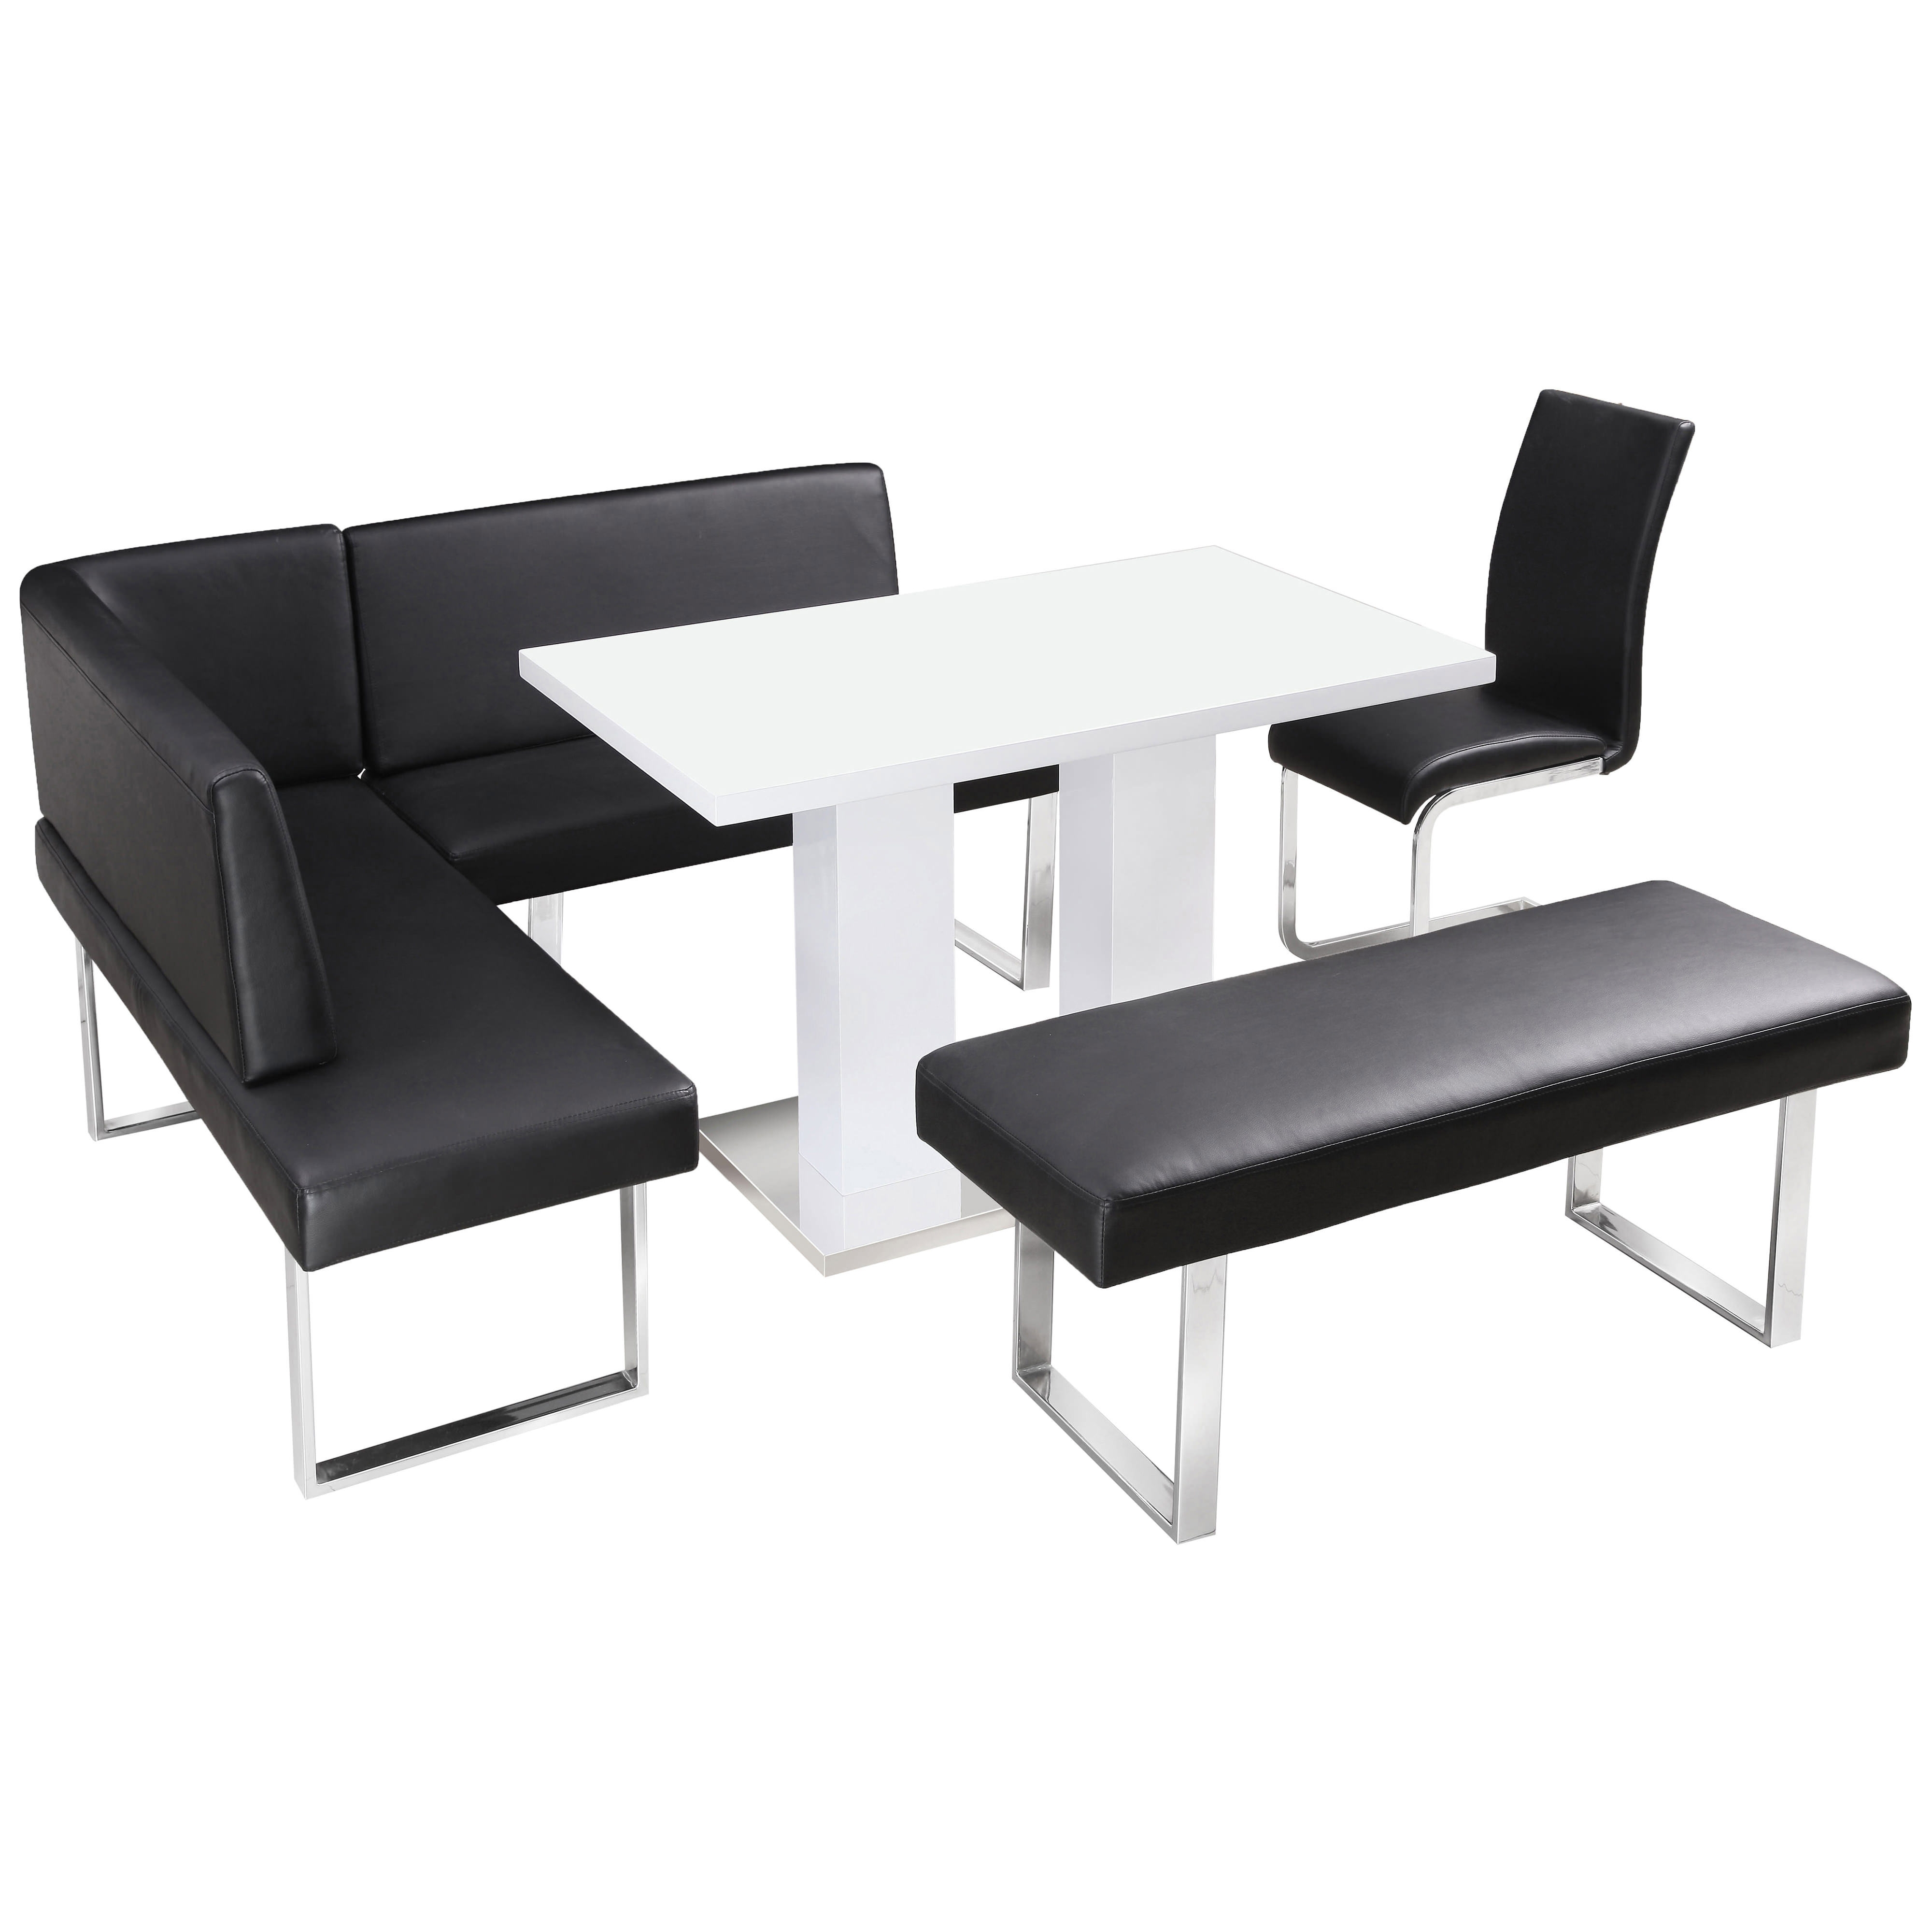 Black High Gloss Dining Tables And Chairs Throughout 2018 High Gloss Dining Table And Chair Set With Corner Bench & 1 Seat (Gallery 16 of 25)